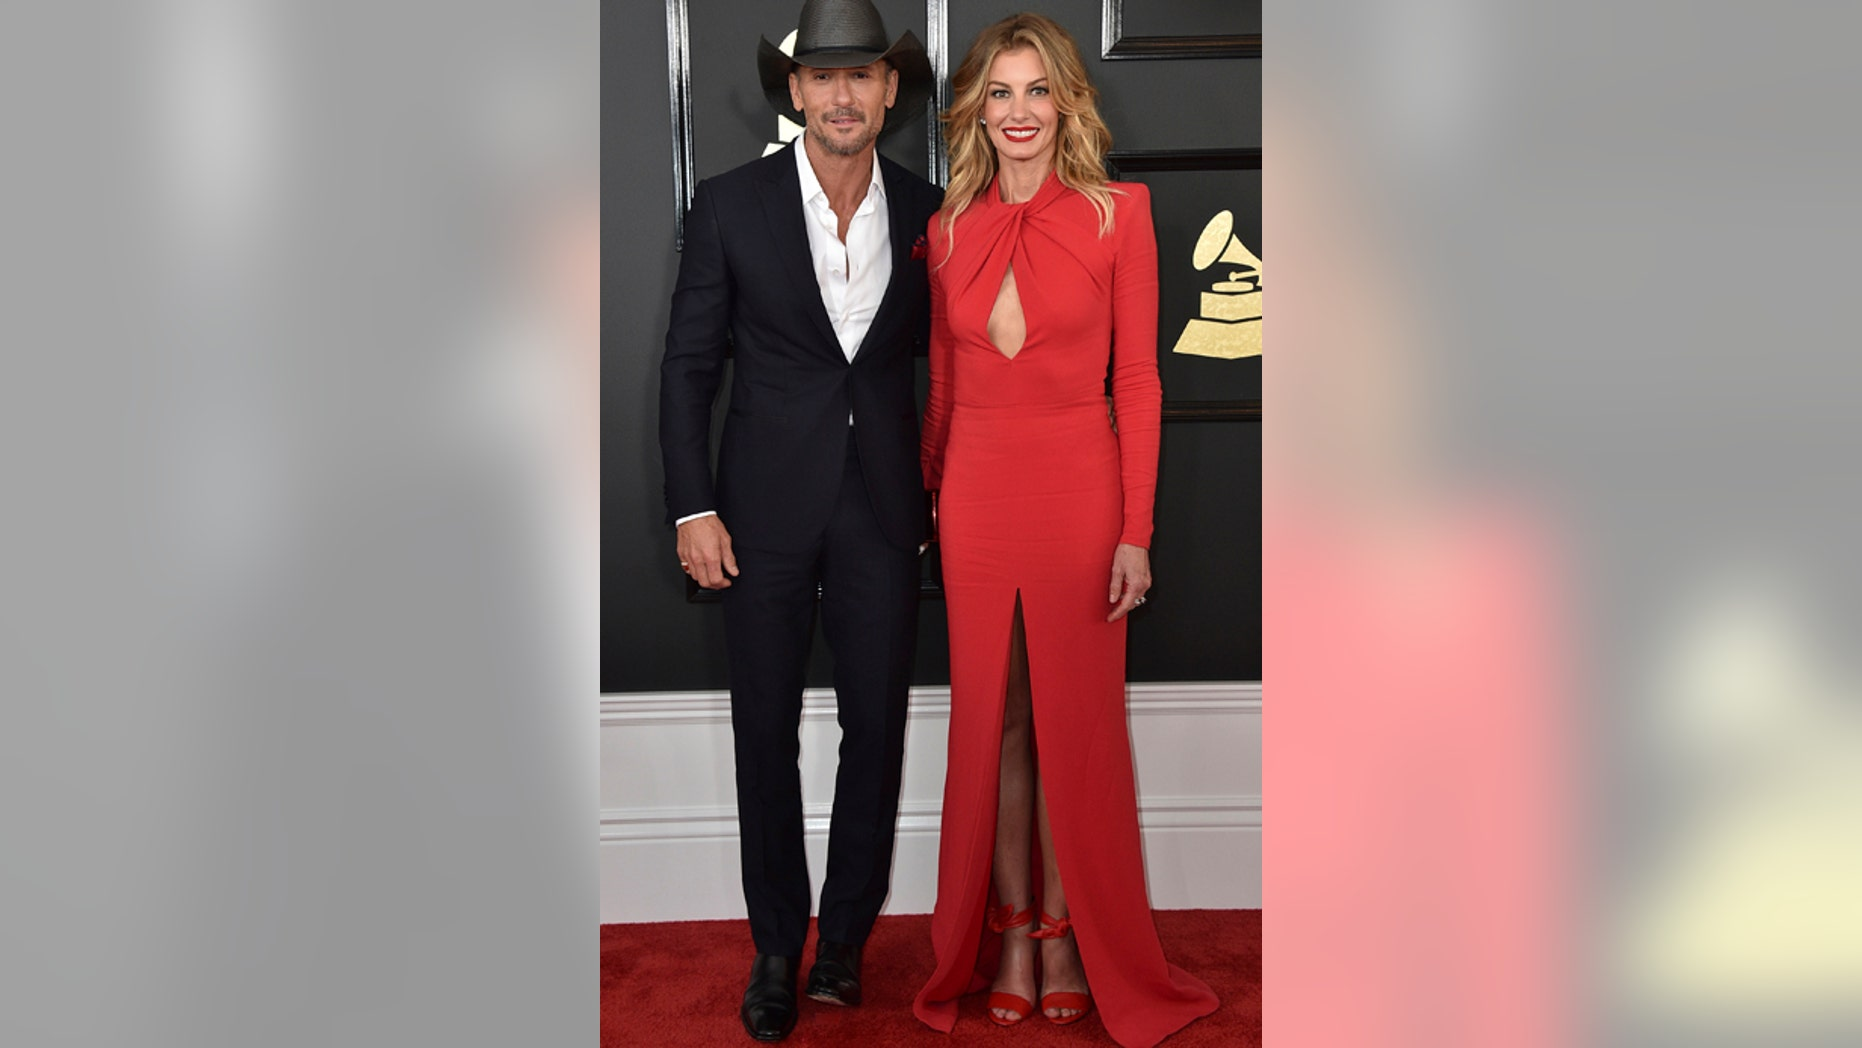 """Tim McGraw and Faith Hill are facing a copyright lawsuit for their new single """"The Rest of Our Life."""" Here, the couple attend the 59th annual Grammy Awards in Los Angeles on Feb. 12, 2017."""